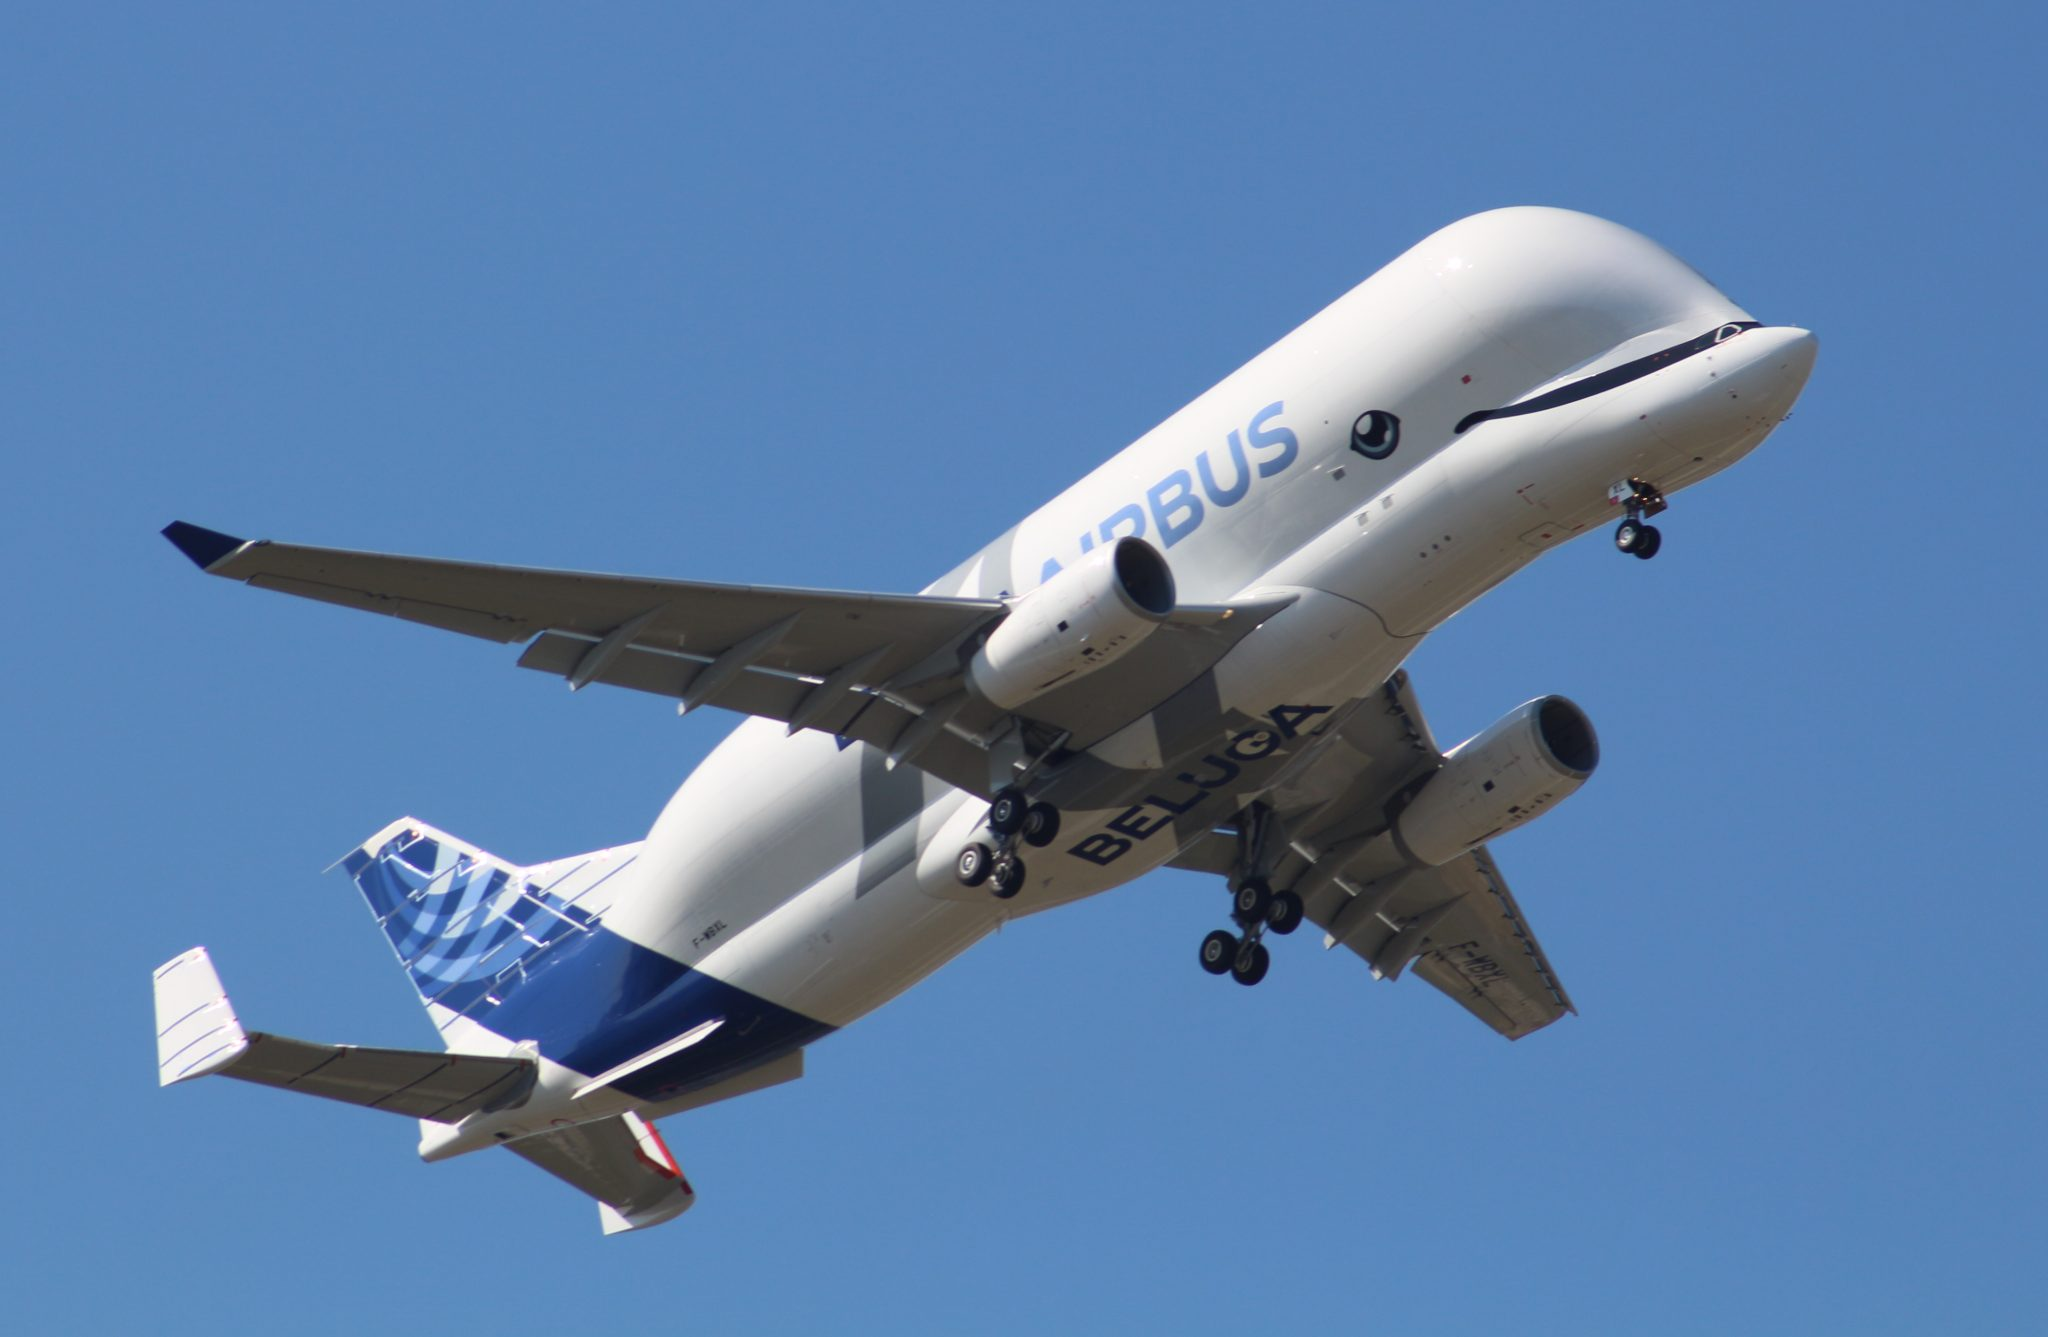 Airplane for oversize cargo made first flight